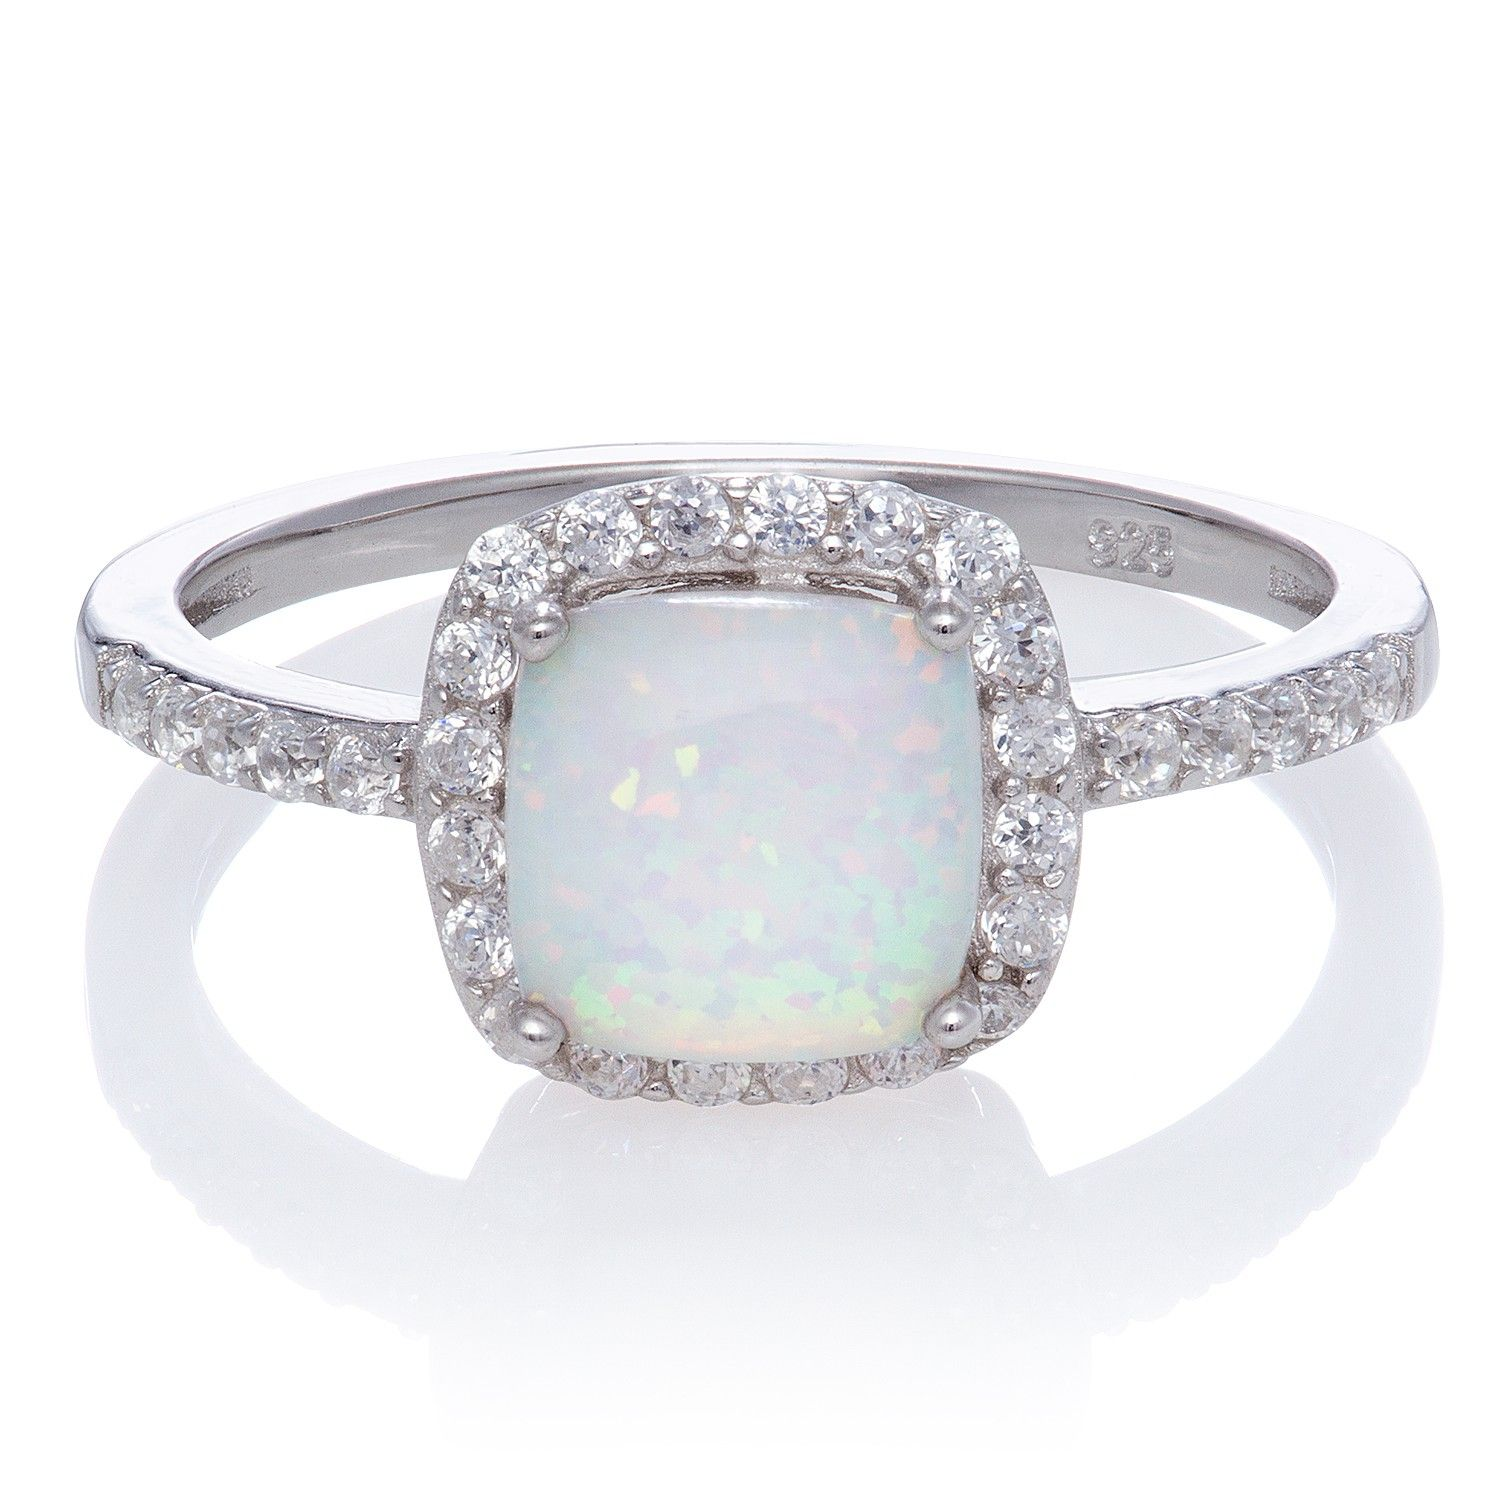 beautiful burst of color with this cushion cut simulated opal with